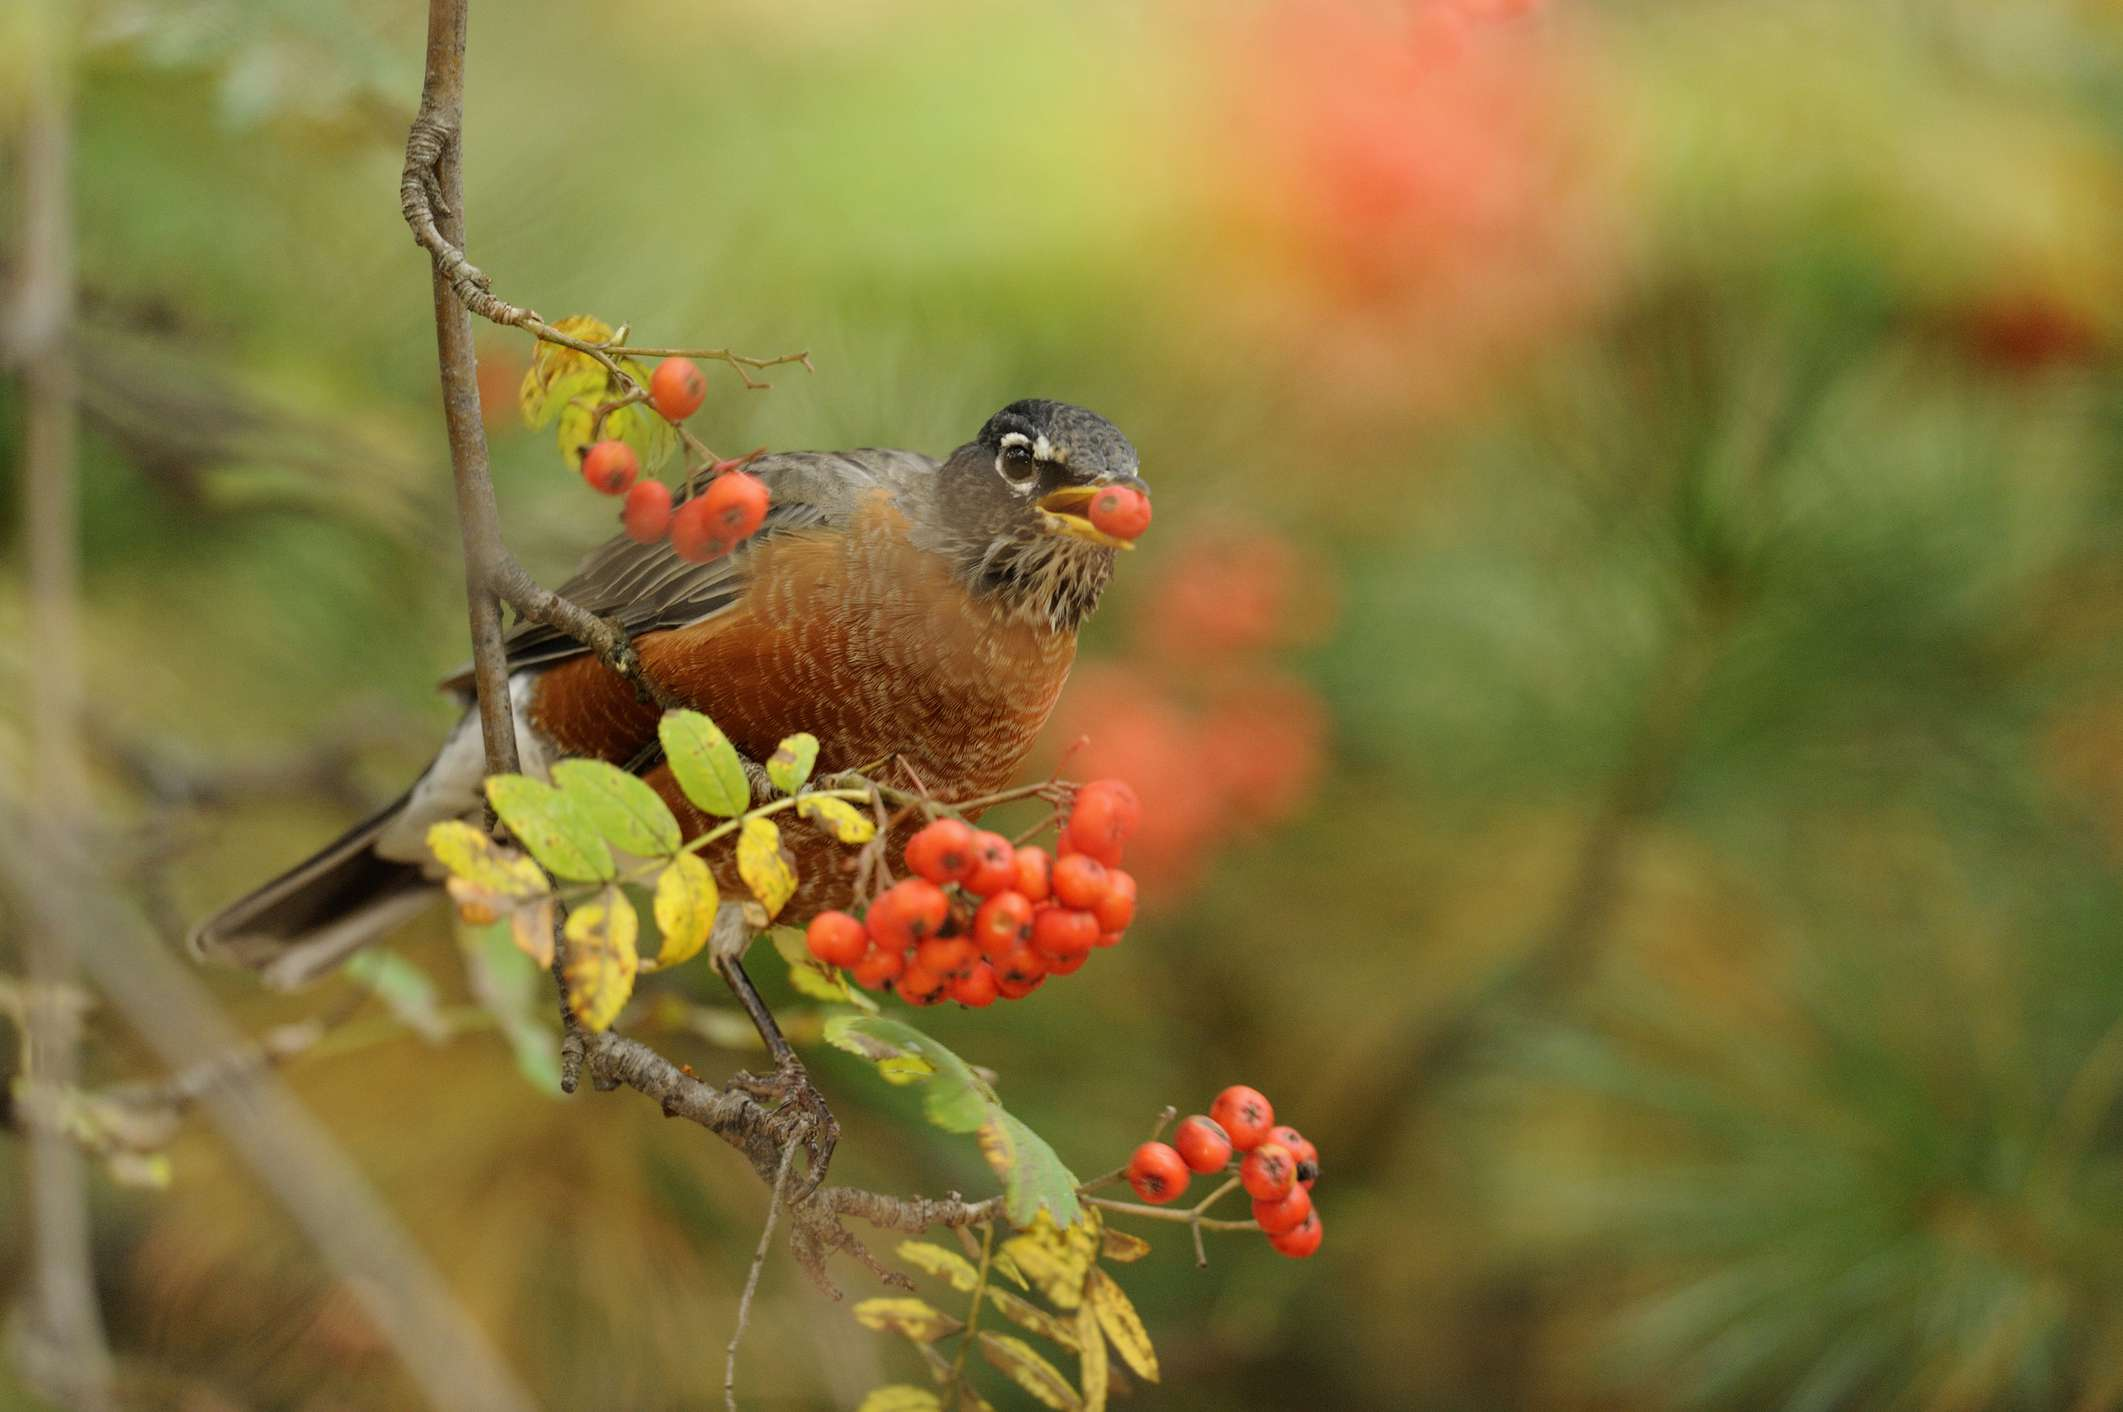 Robin eating berry from mountain ash tree.